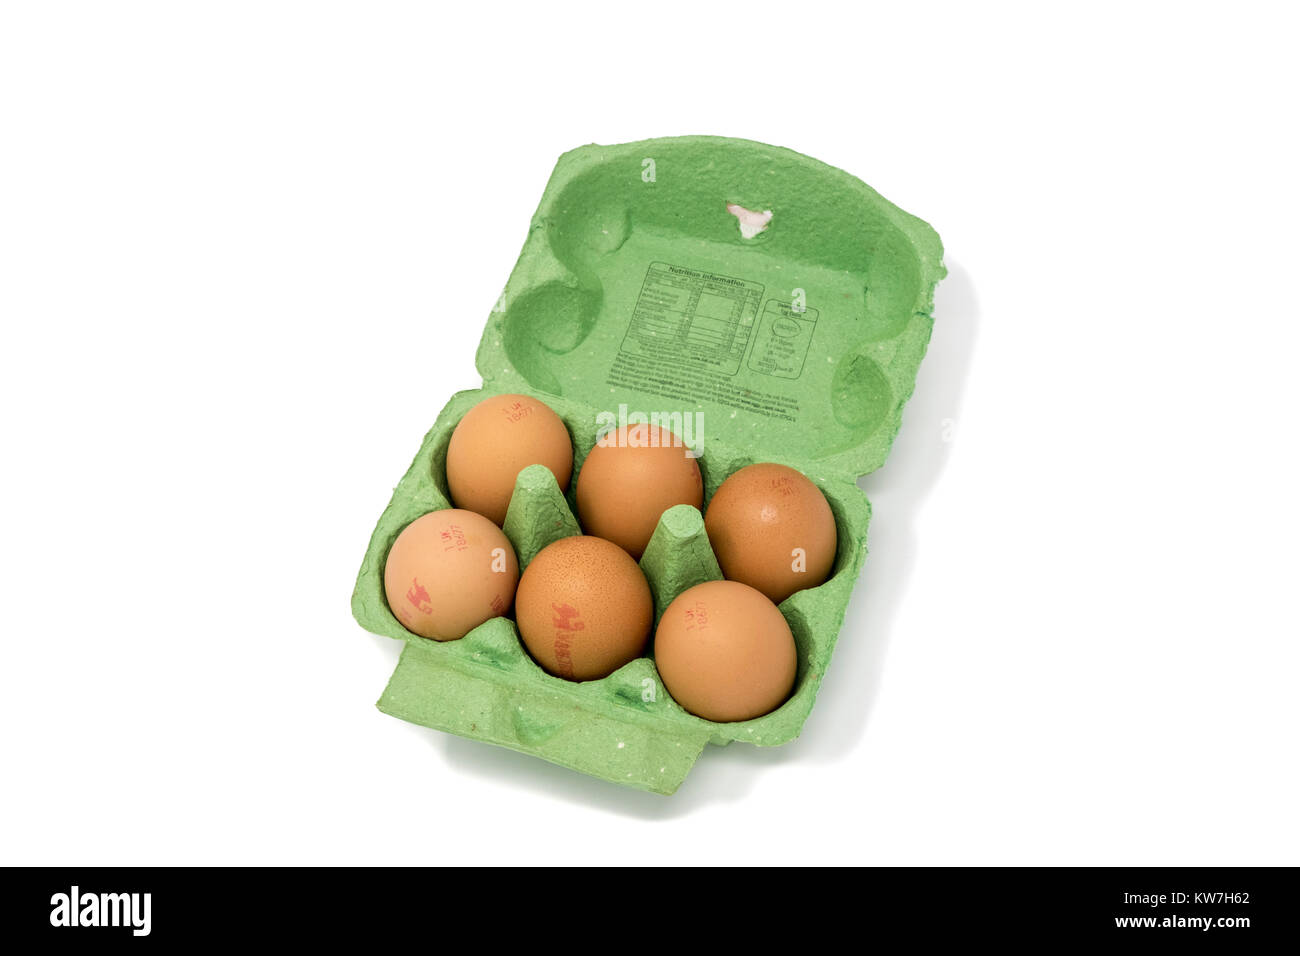 Carton of half a dozen free range British eggs stamped with egg codes - Stock Image